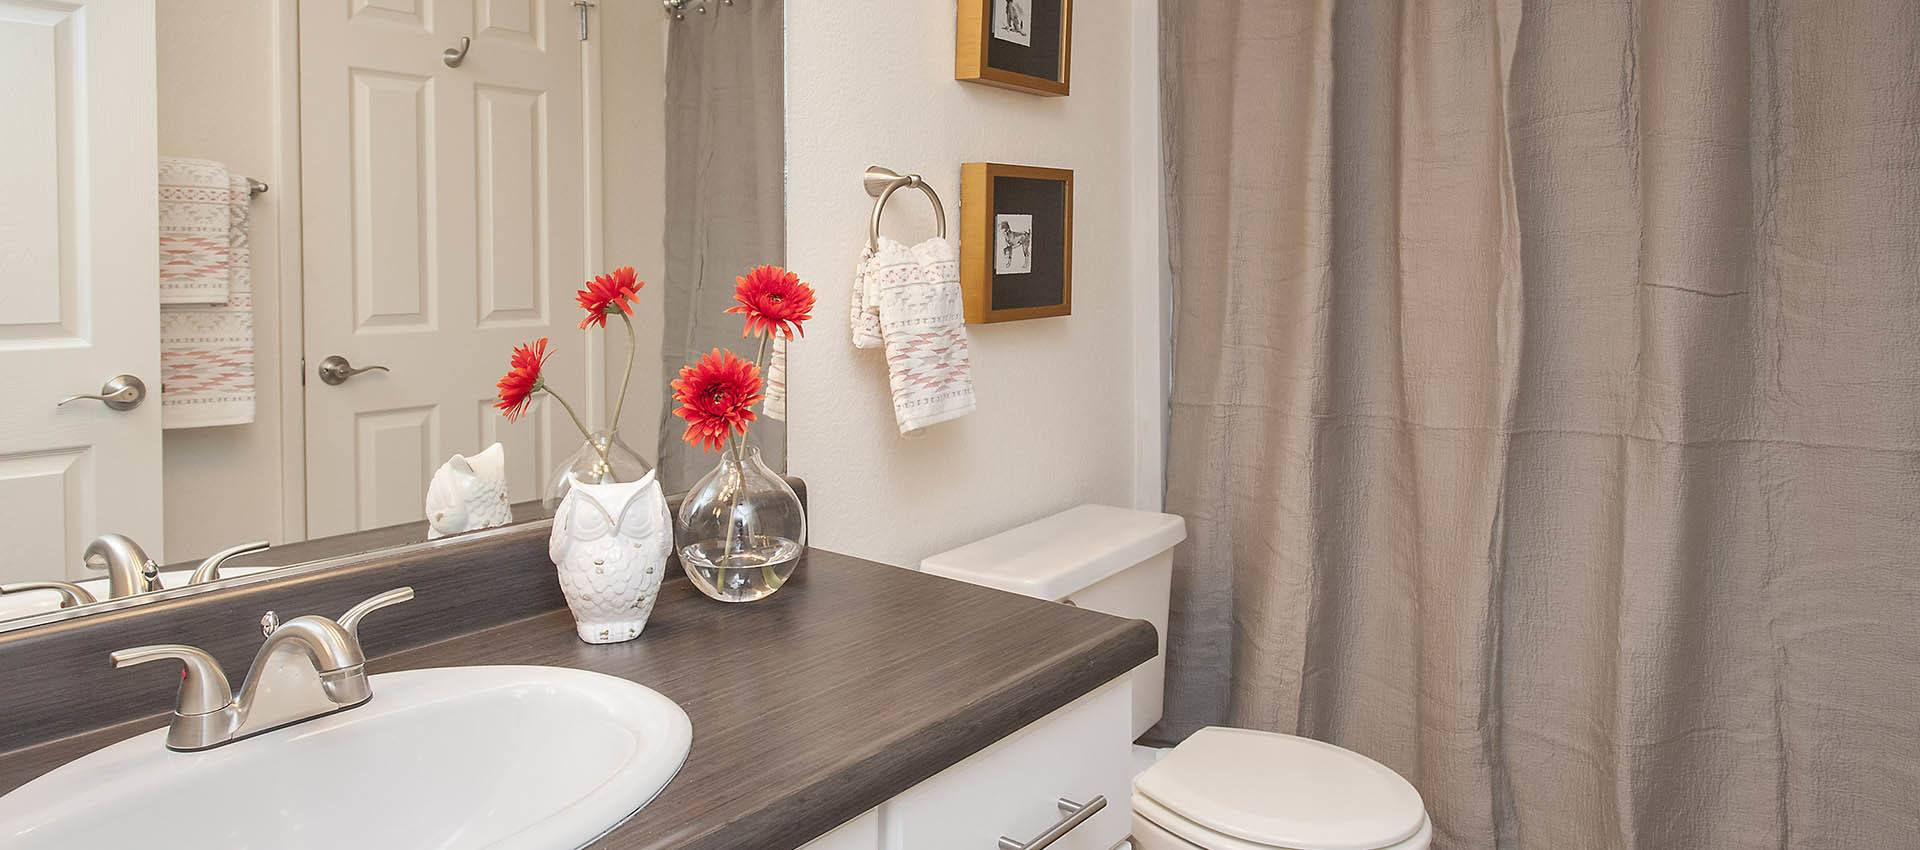 Nicely Decorated Bathroom at Hidden Lake Condominium Rentals in Sacramento, California